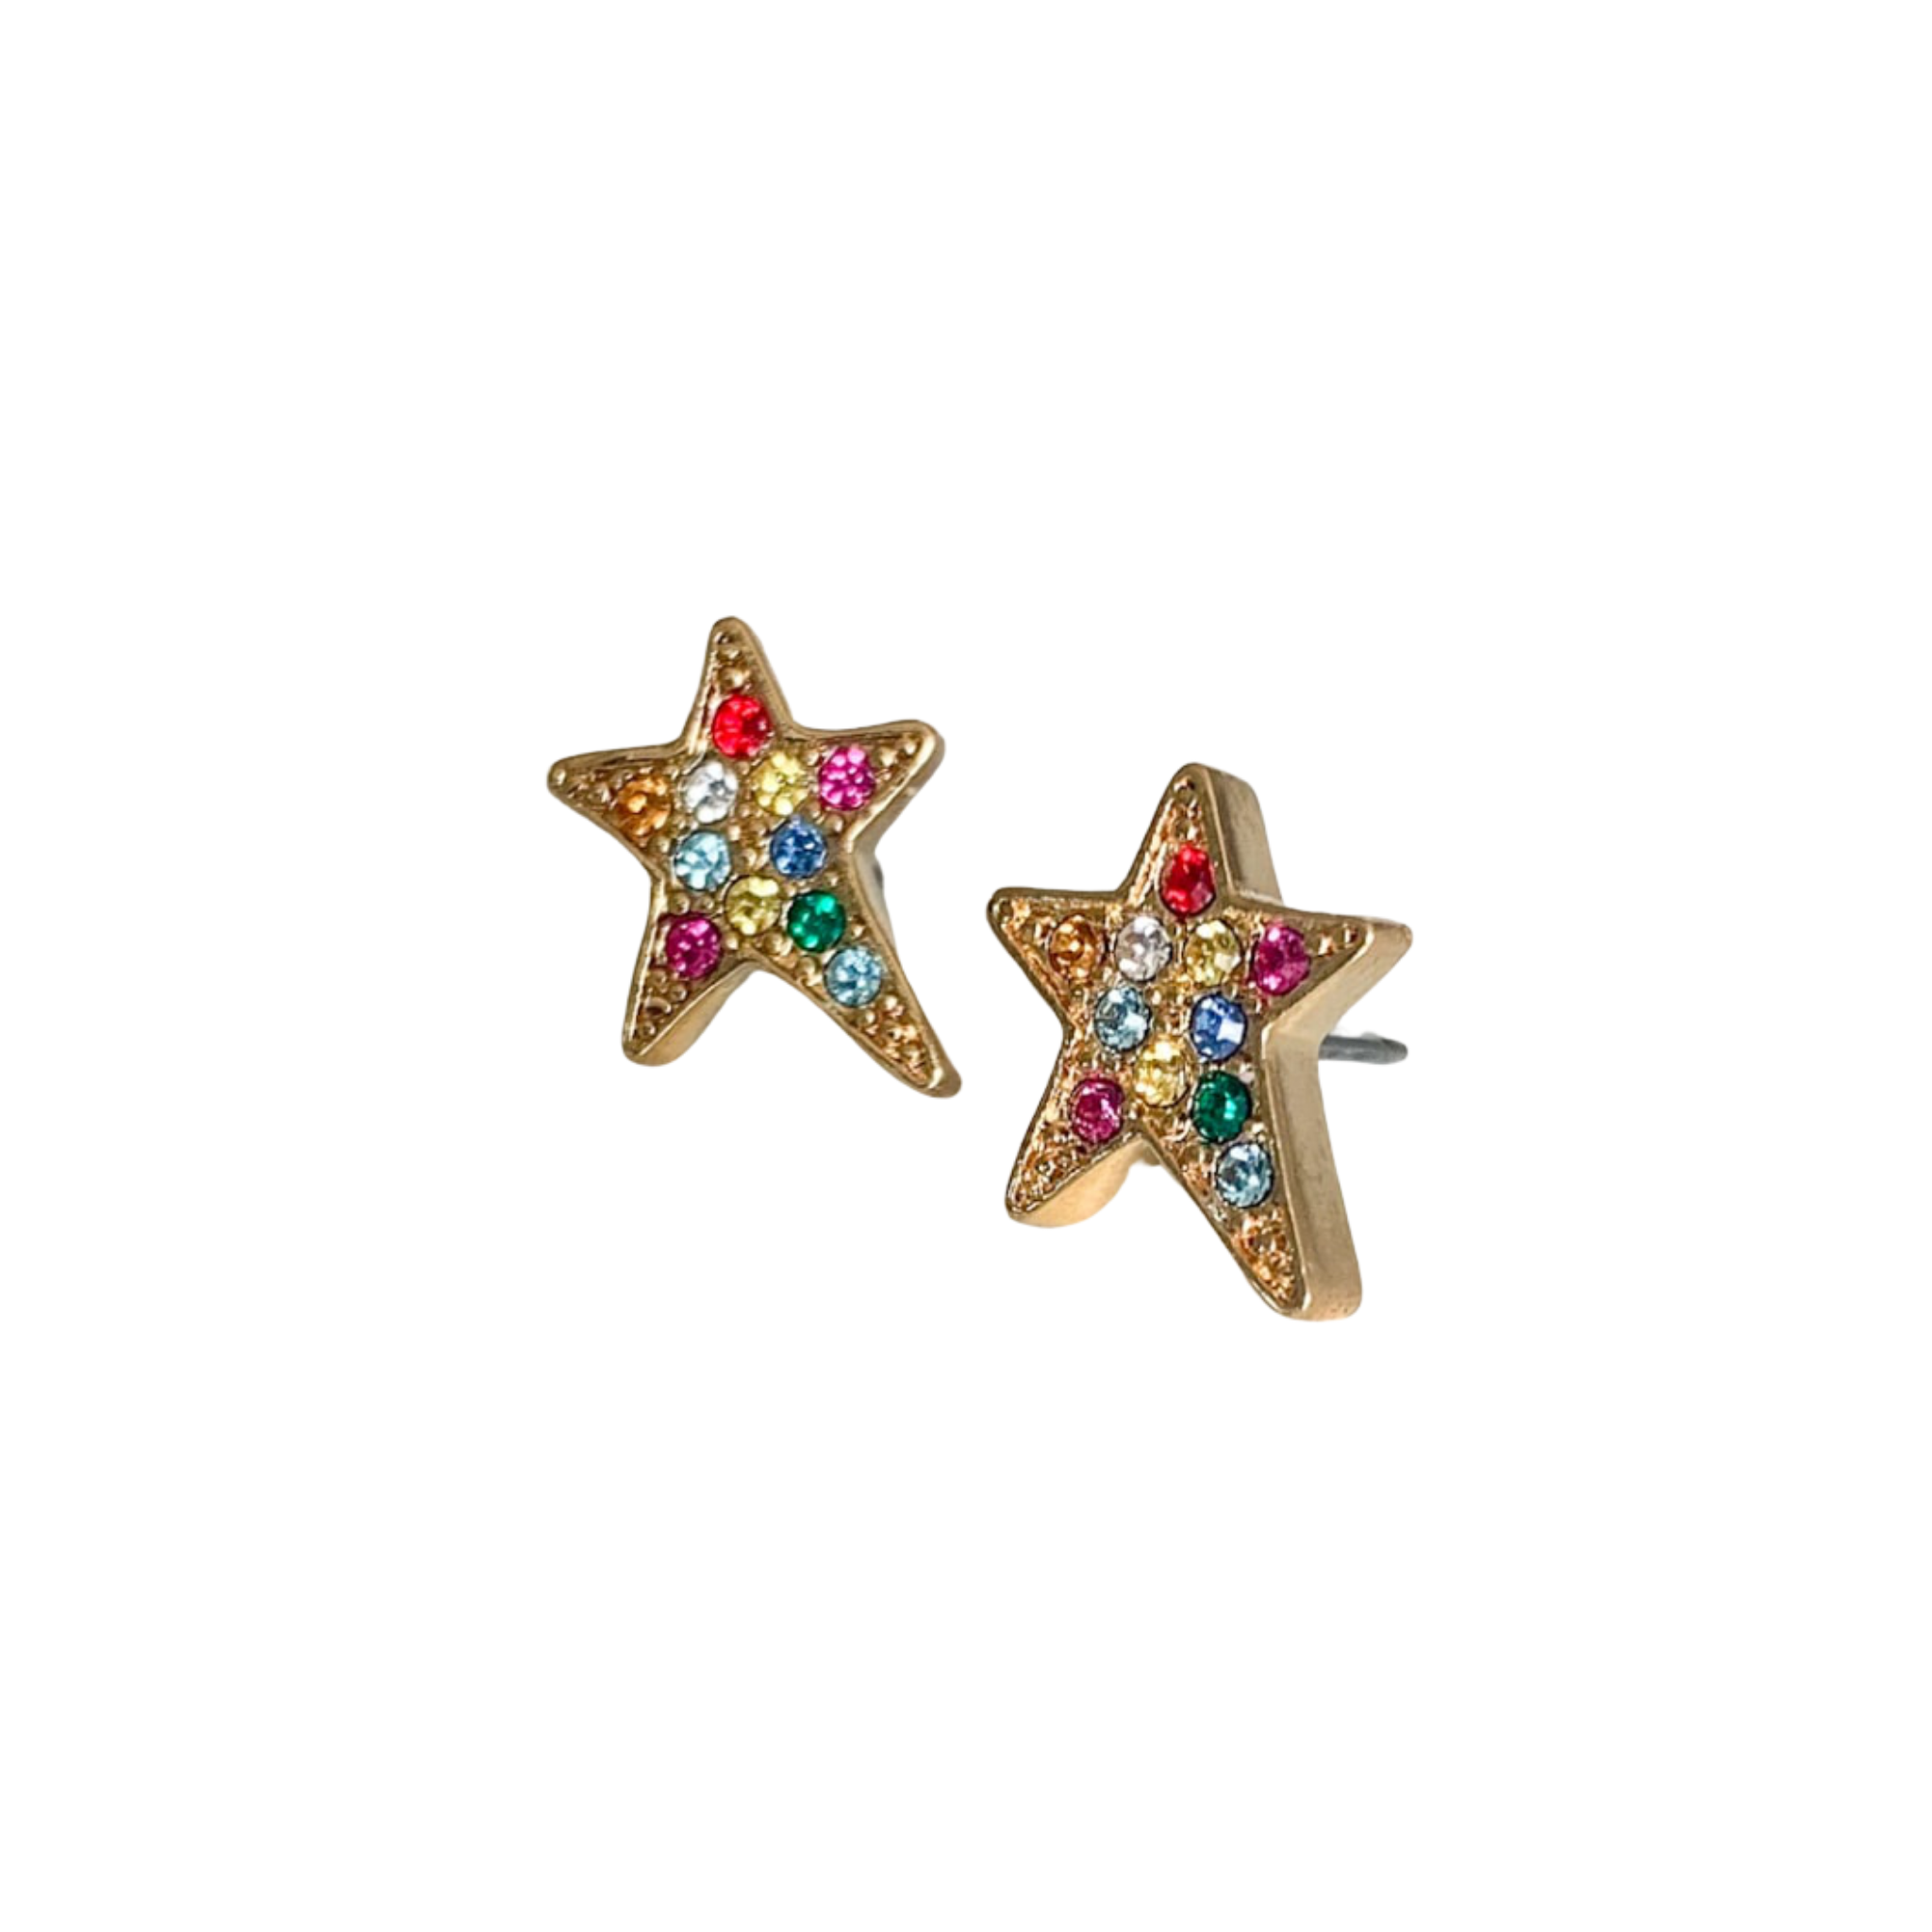 Shana Large Rainbow Crystal Star Pierced Stud Earrings (Gold and Silver)